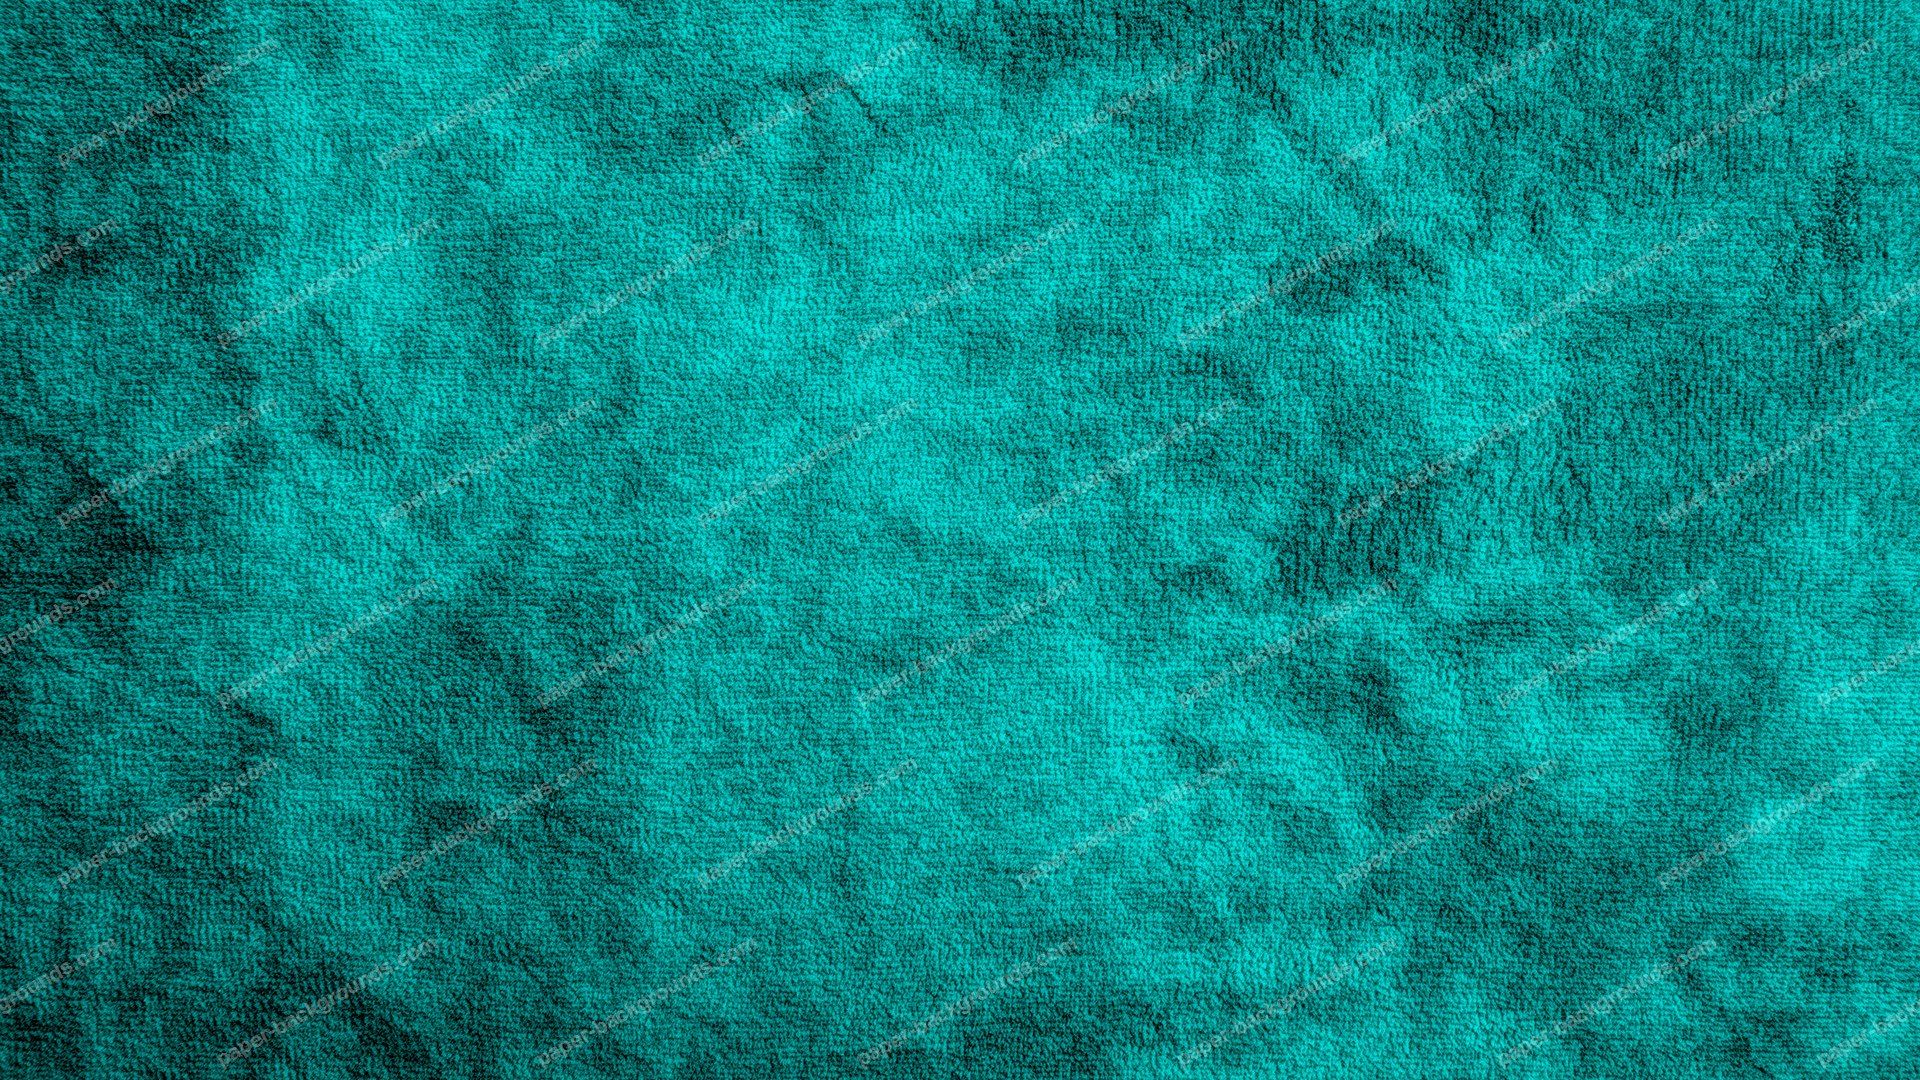 Marine Blue Fine Carpet Texture HD 1920 x 1080p